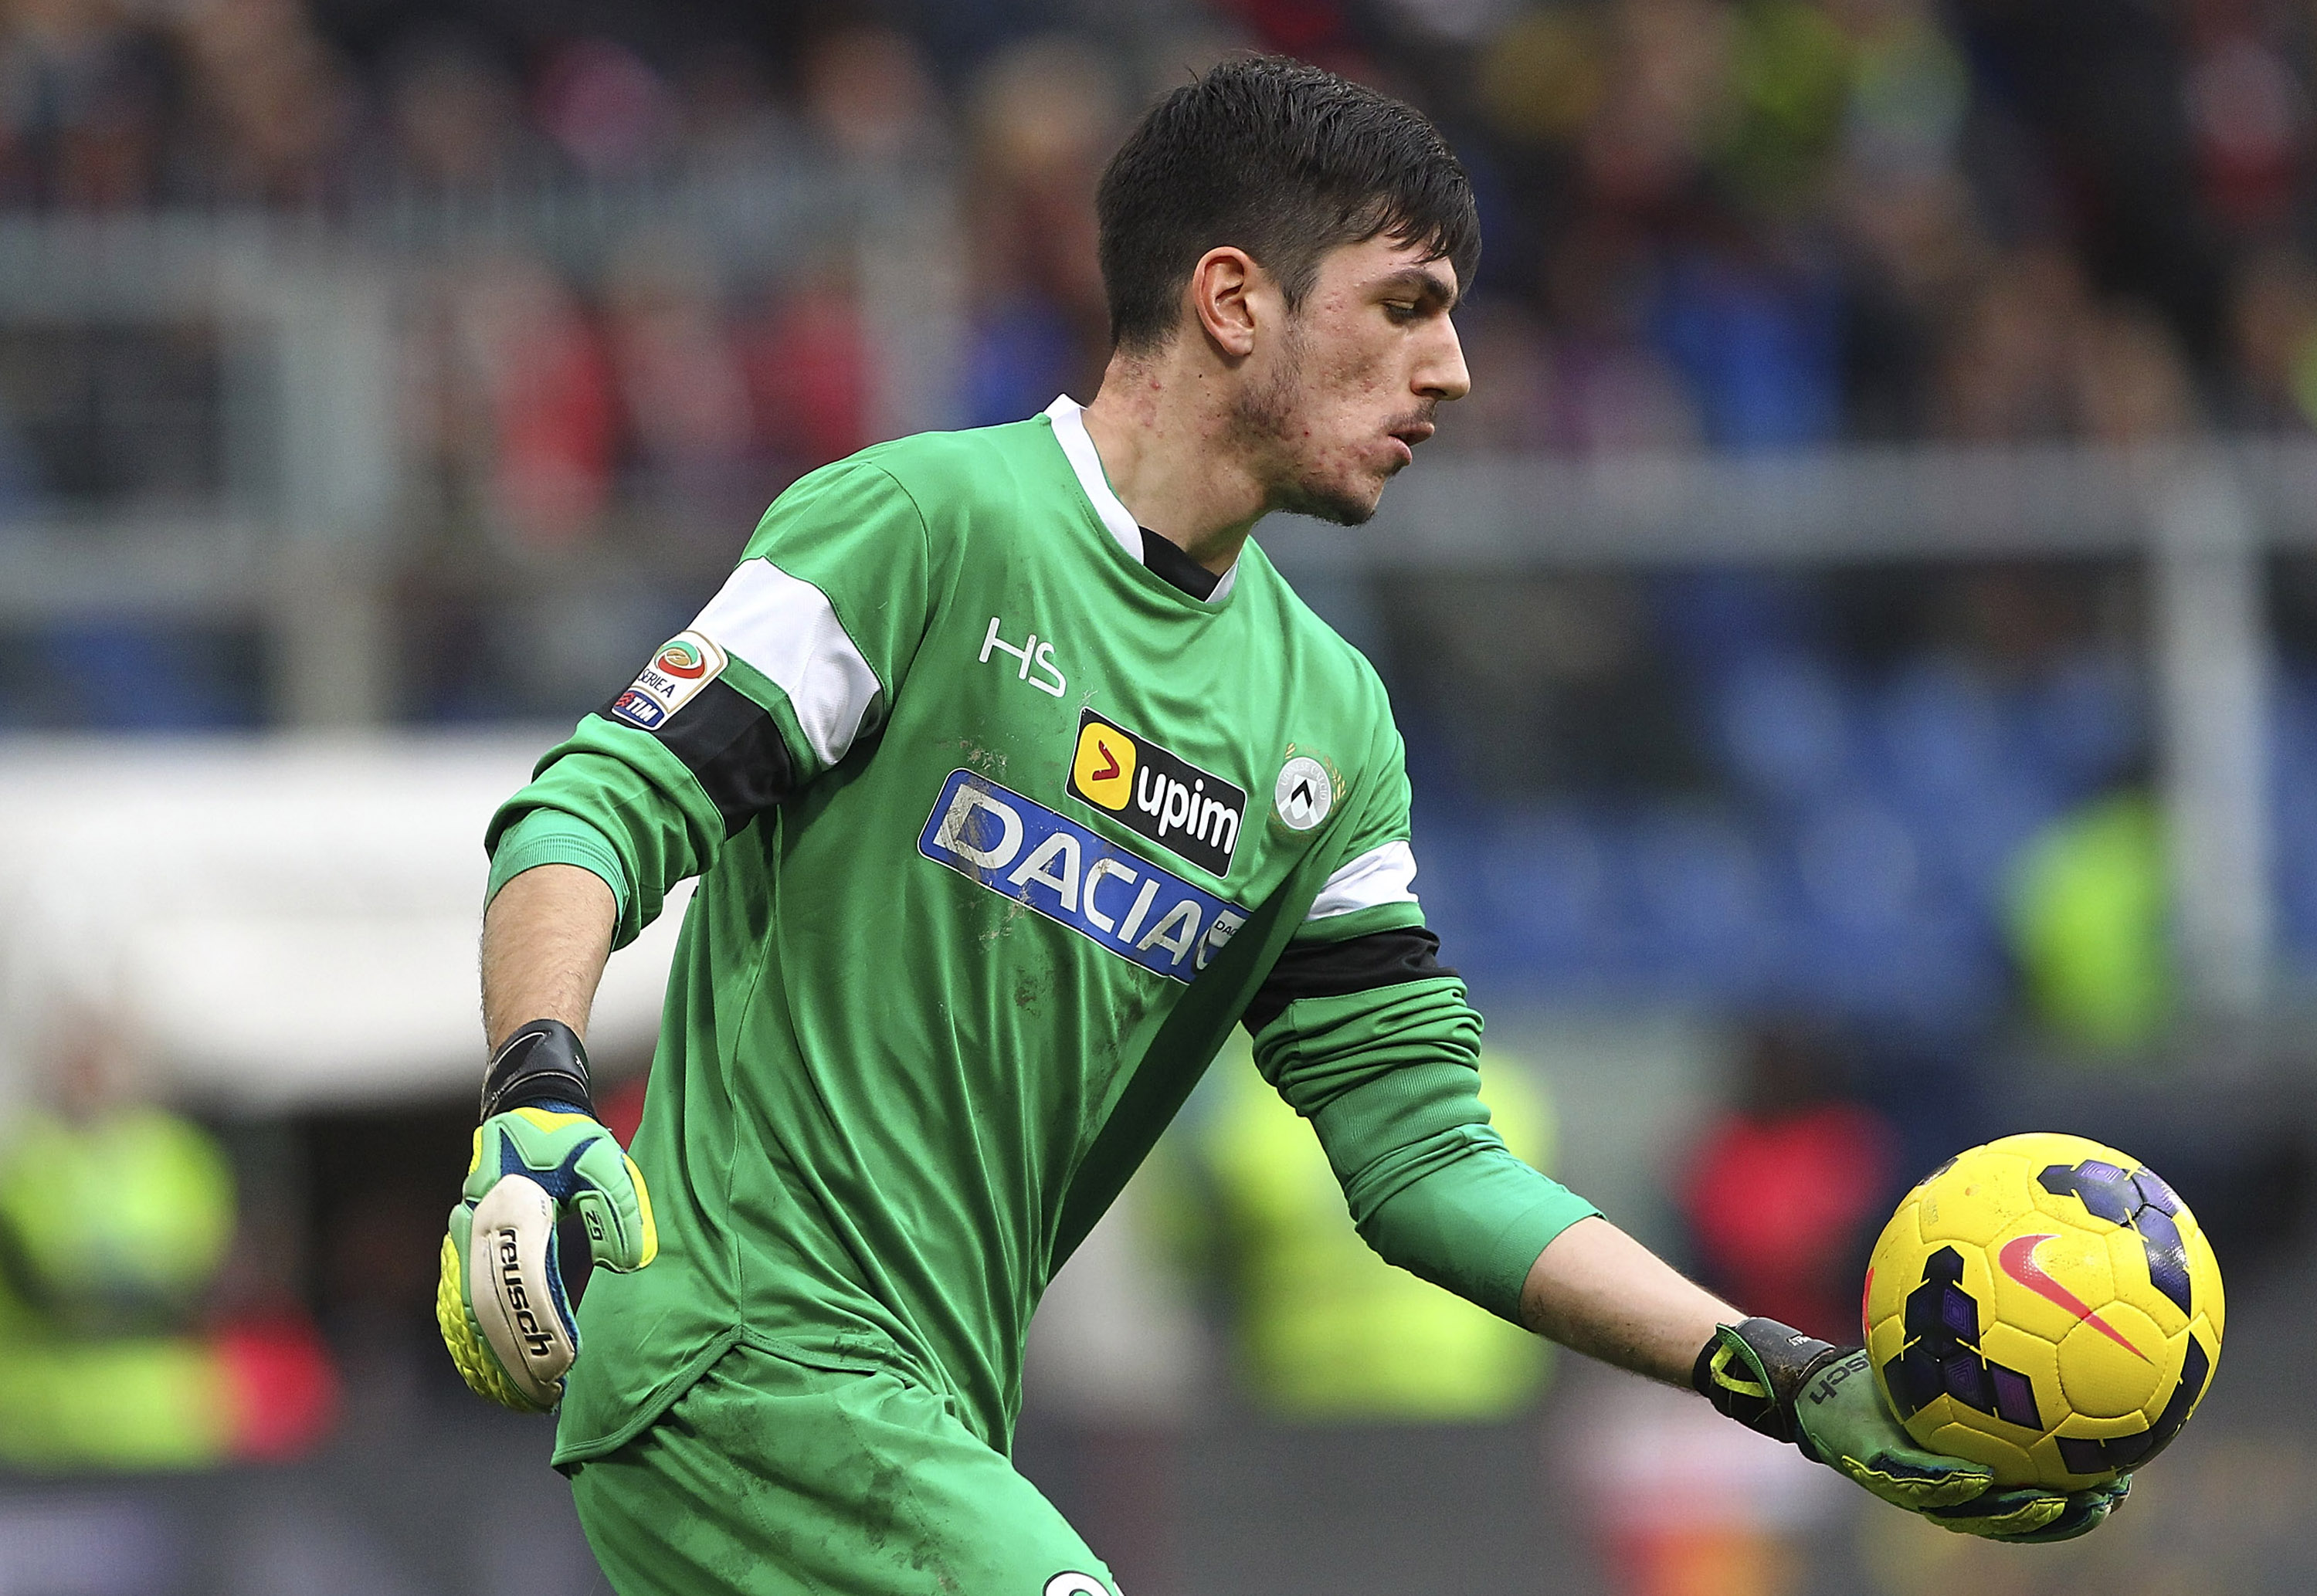 Arsenal eye summer transfer for exciting Udinese goalkeeper Simone Scuffet